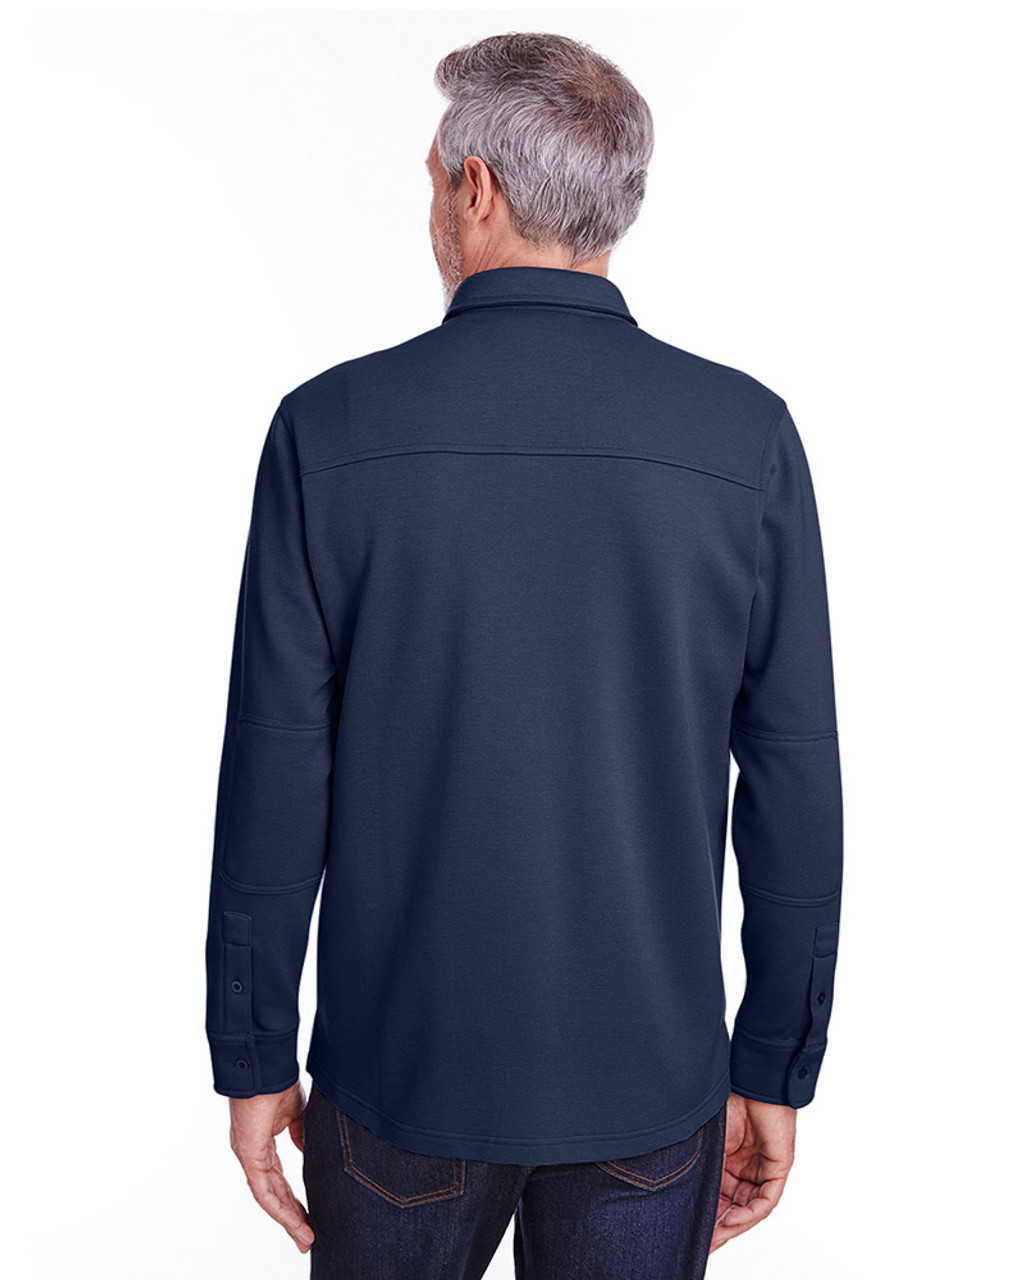 Dark Navy - back, M708 Harriton Adult StainBloc™ Pique Fleece Shirt-Jacket | Blankclothing.ca